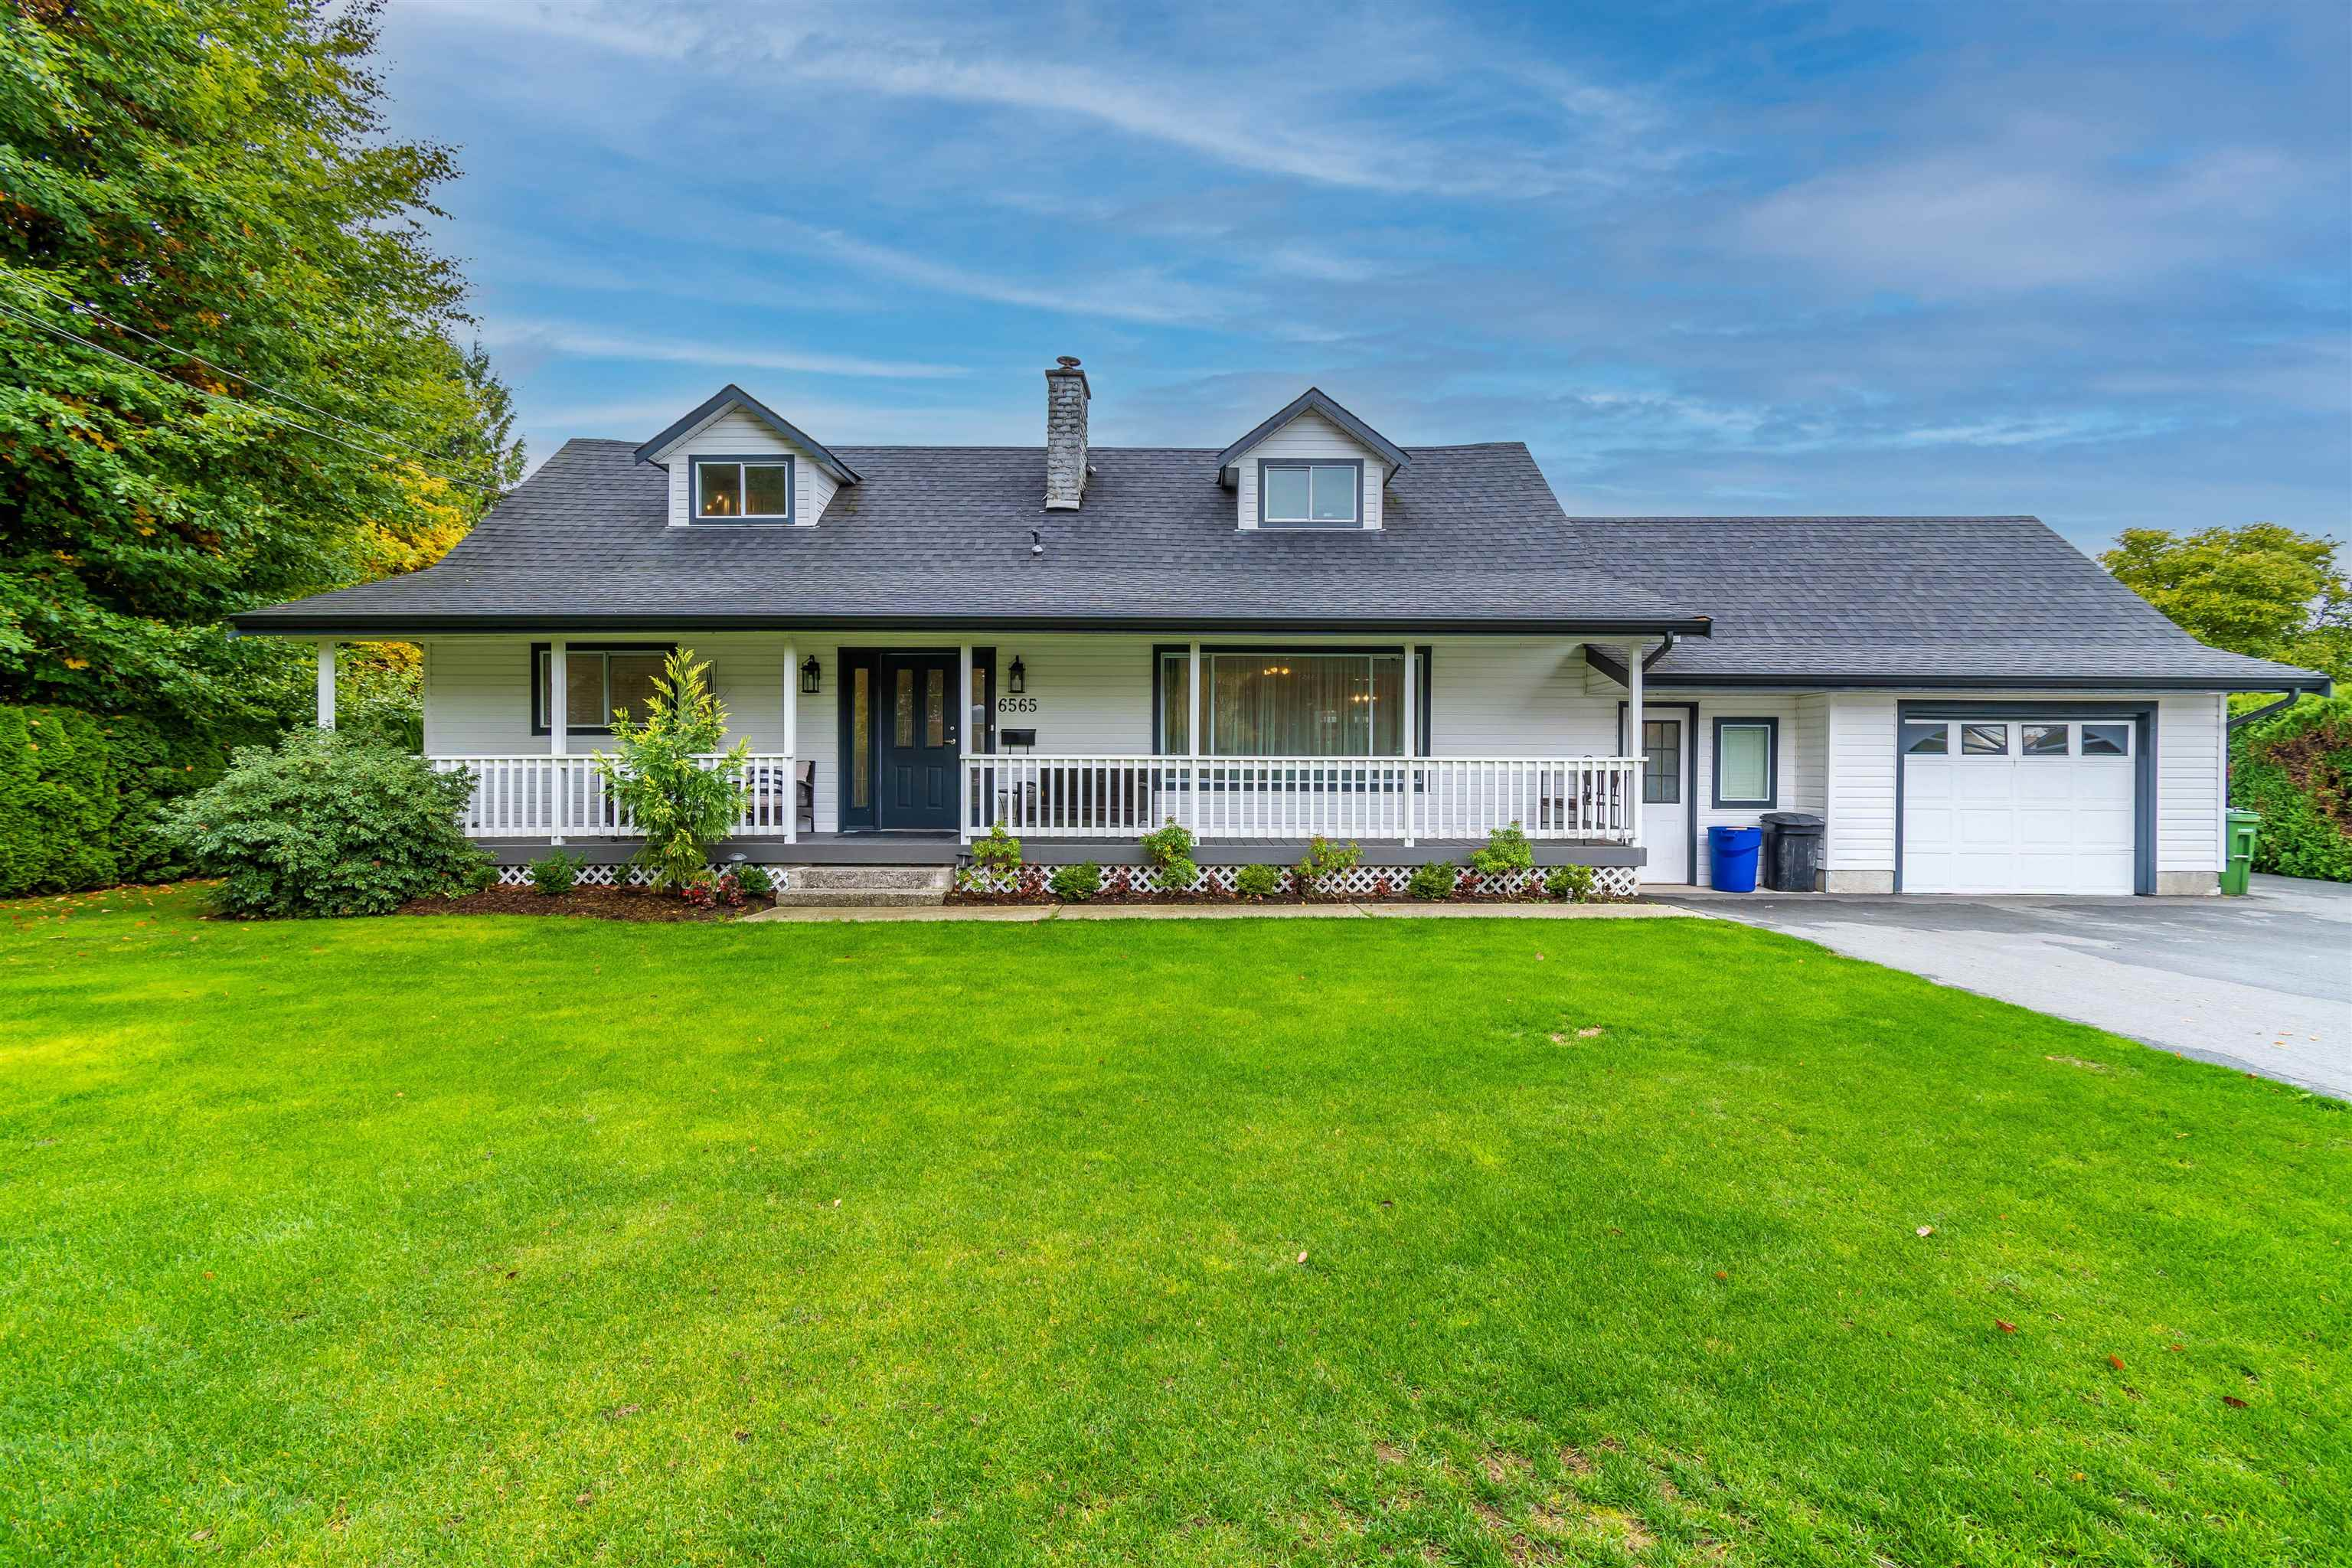 6565 DOGWOOD DRIVE - Sardis West Vedder Rd House/Single Family for sale, 4 Bedrooms (R2626344) - #1